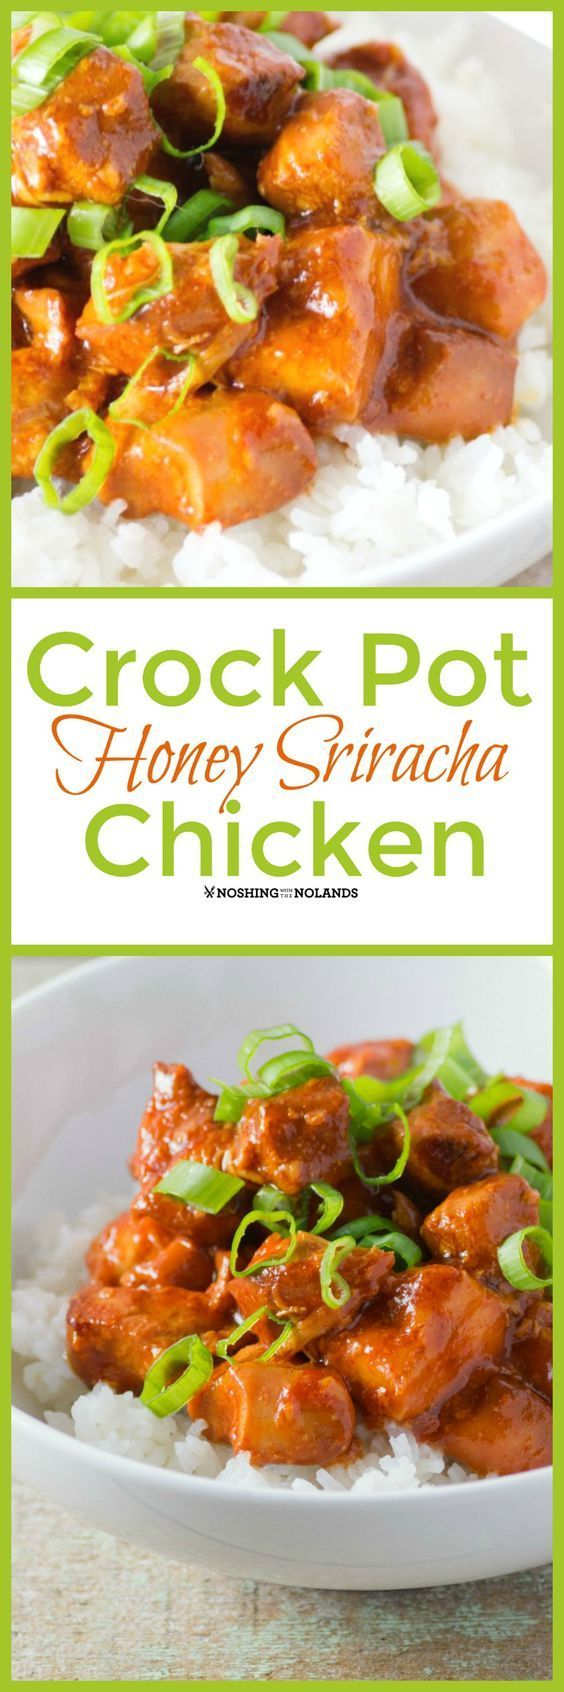 Crockpot Honey Sriracha Chicken by Noshing With The Nolands is a tangy sweet dish that is so easy to make and delicious too. Sure to become a favorite!